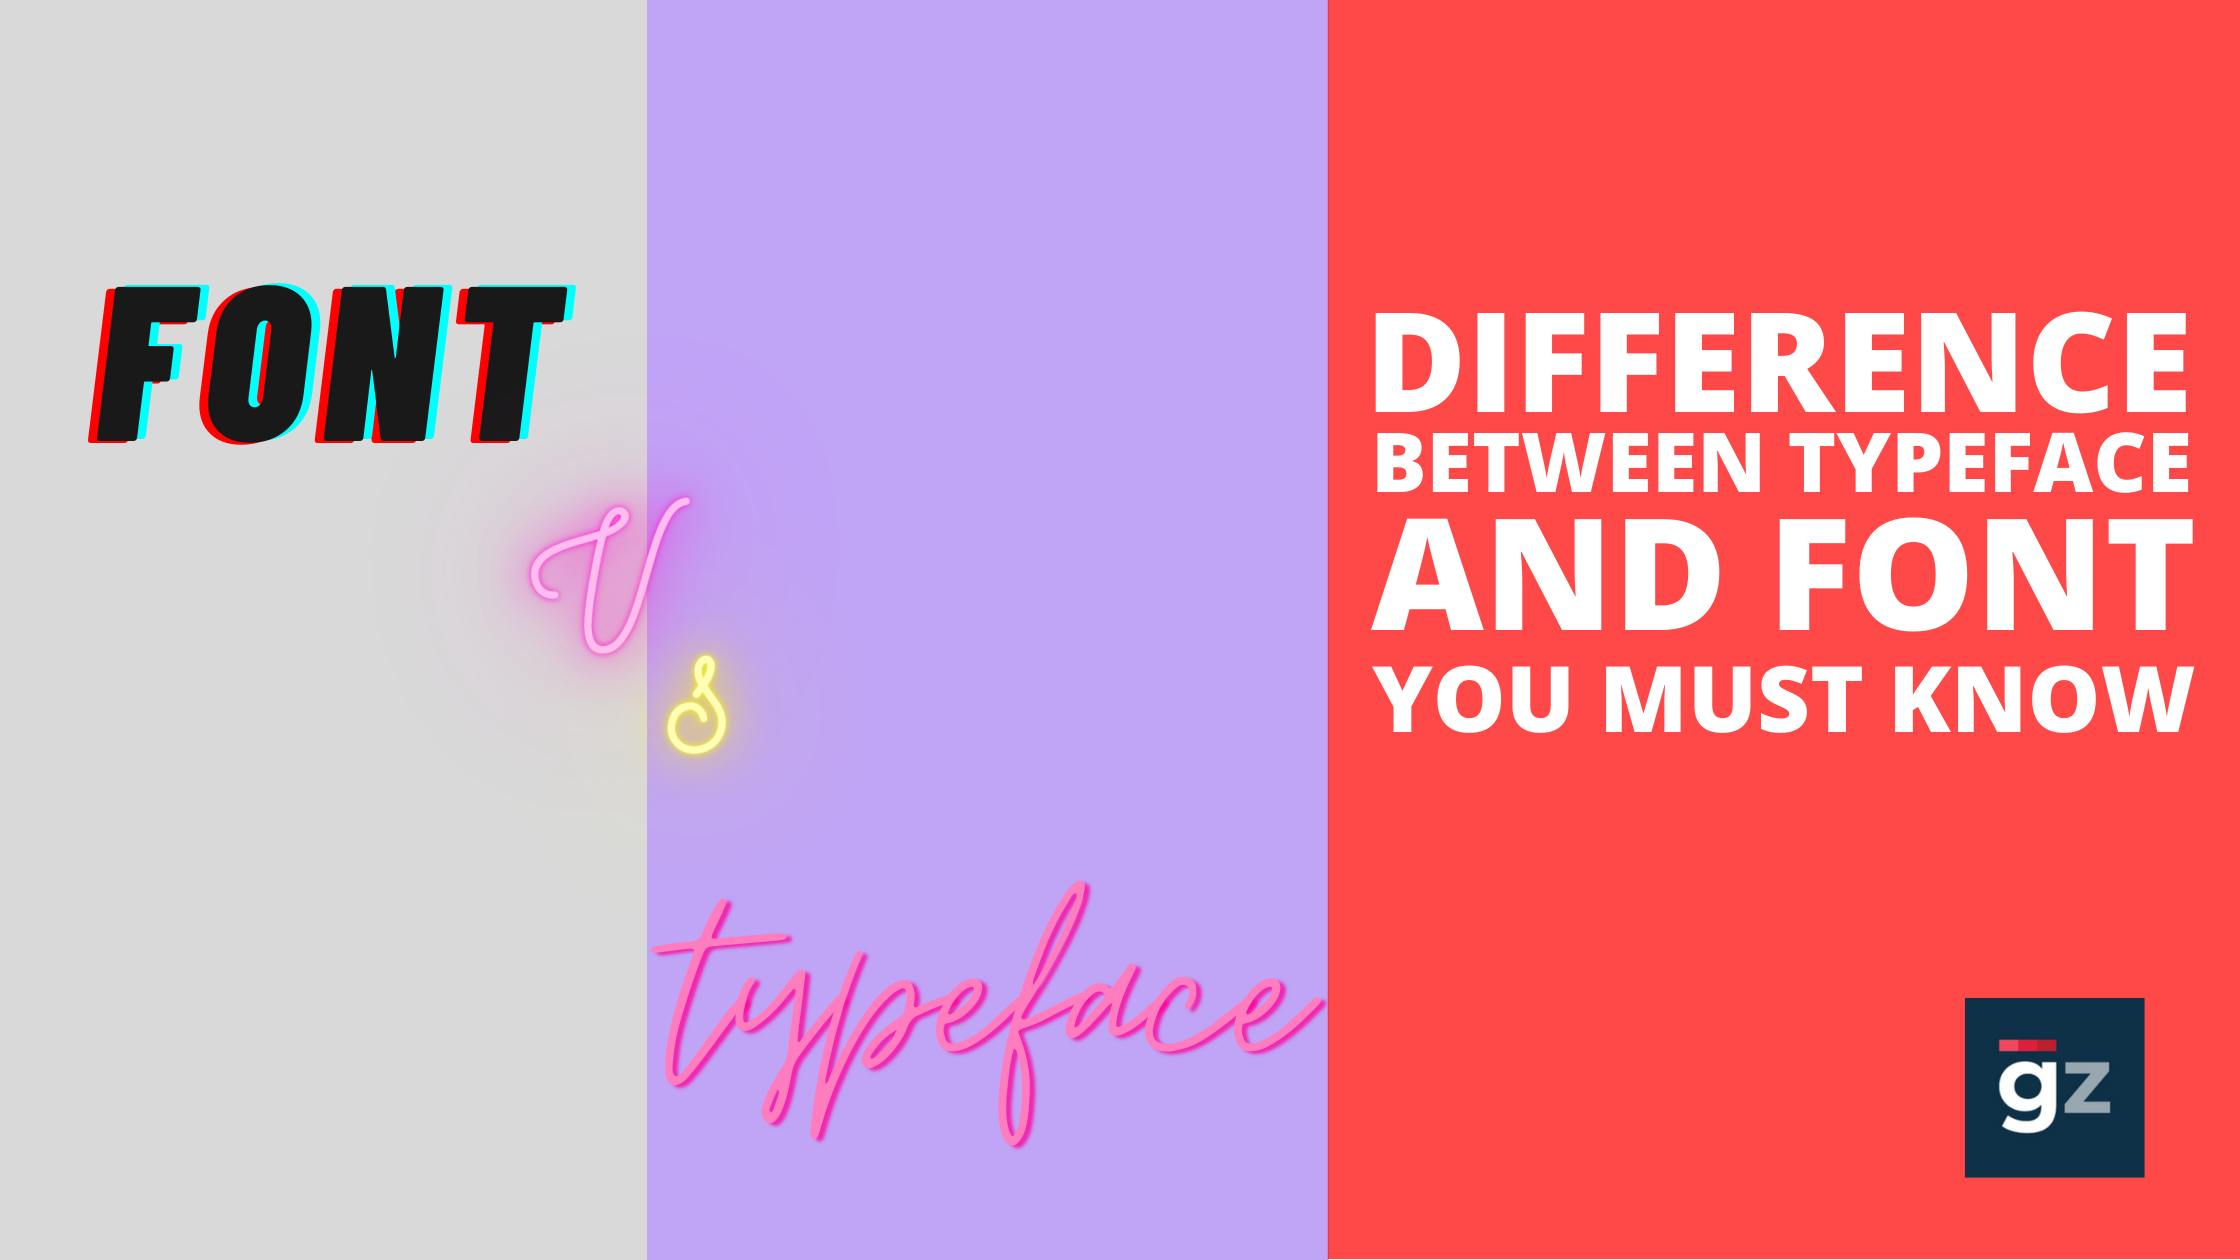 Difference Between Typeface and Font You Must Know